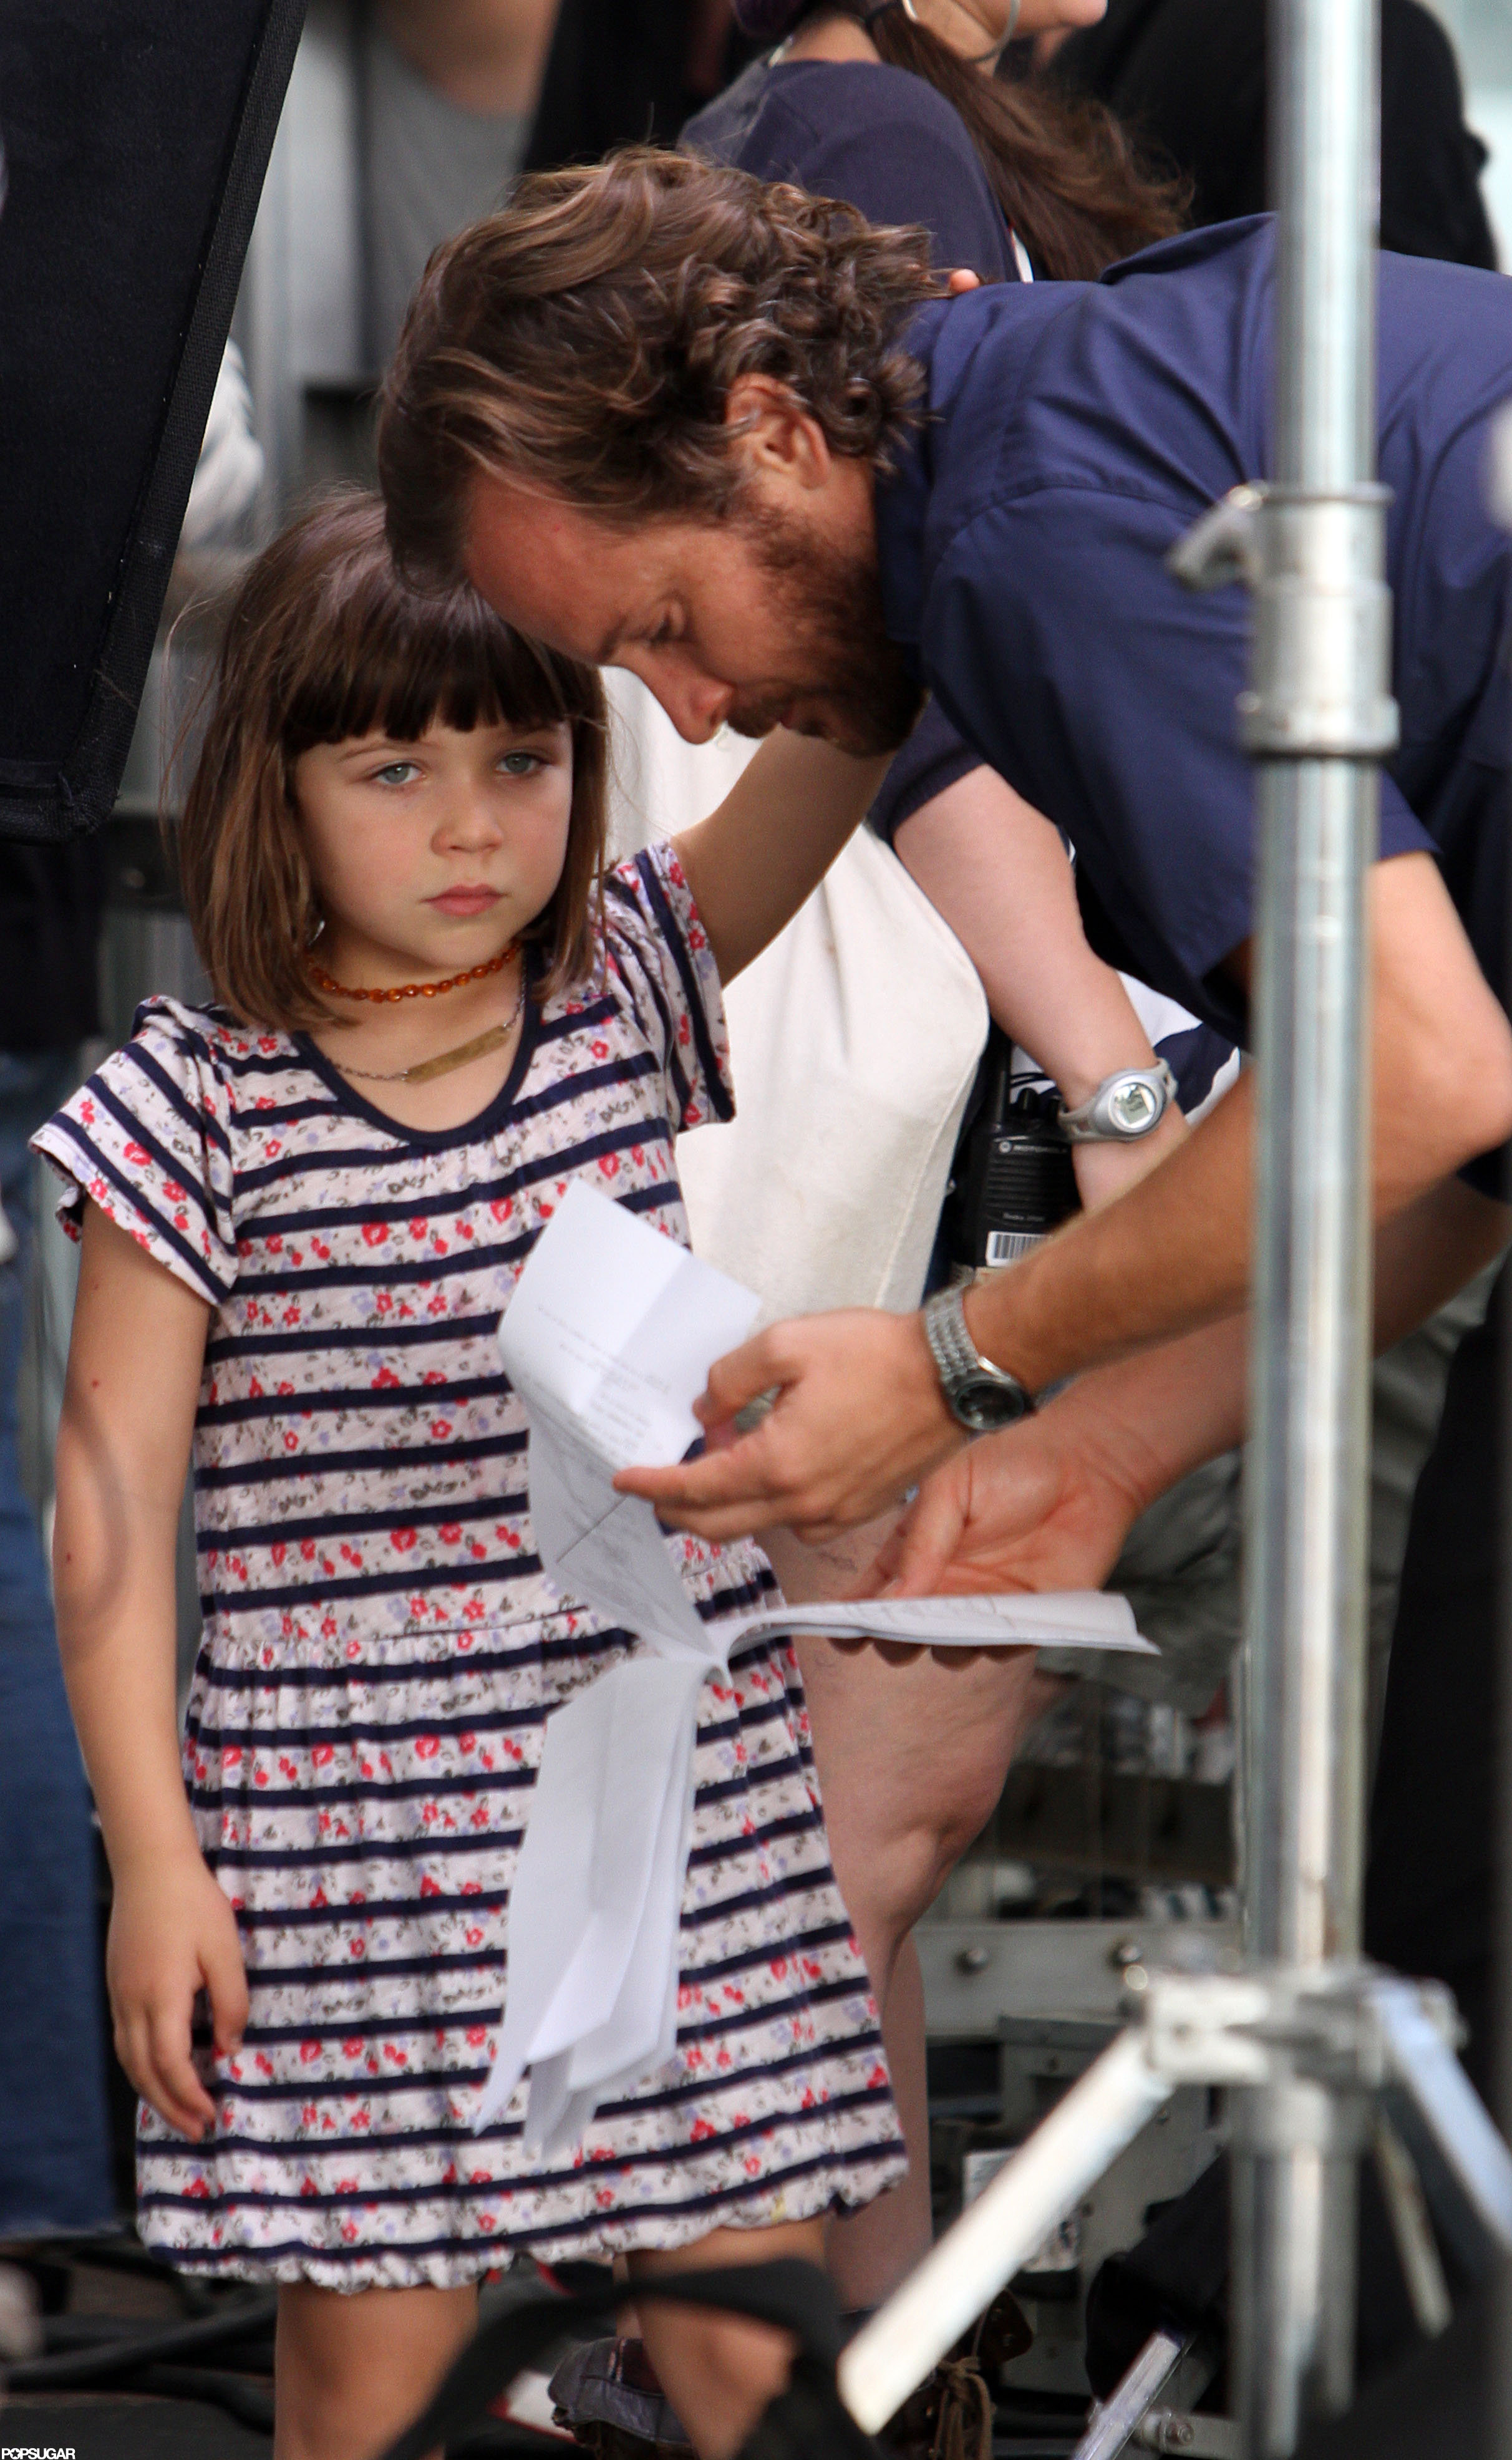 A First Look at Maggie Gyllenhaal and Peter Sarsgaard's Daughter Gloria!